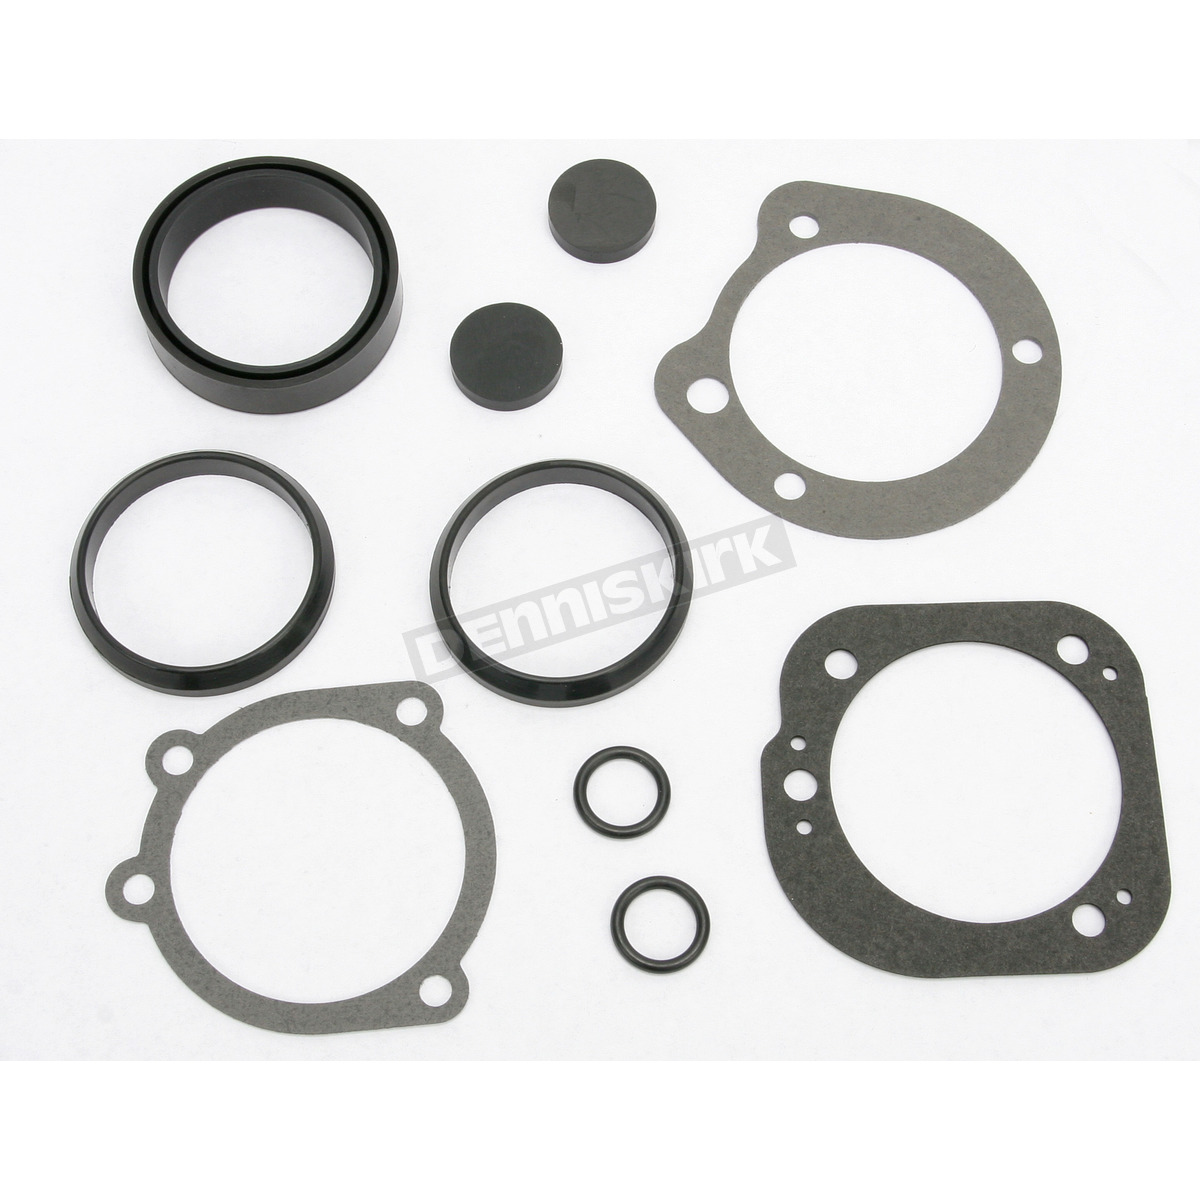 CV Carb and Intake/Manifold Seal Kit - 27002-89-K